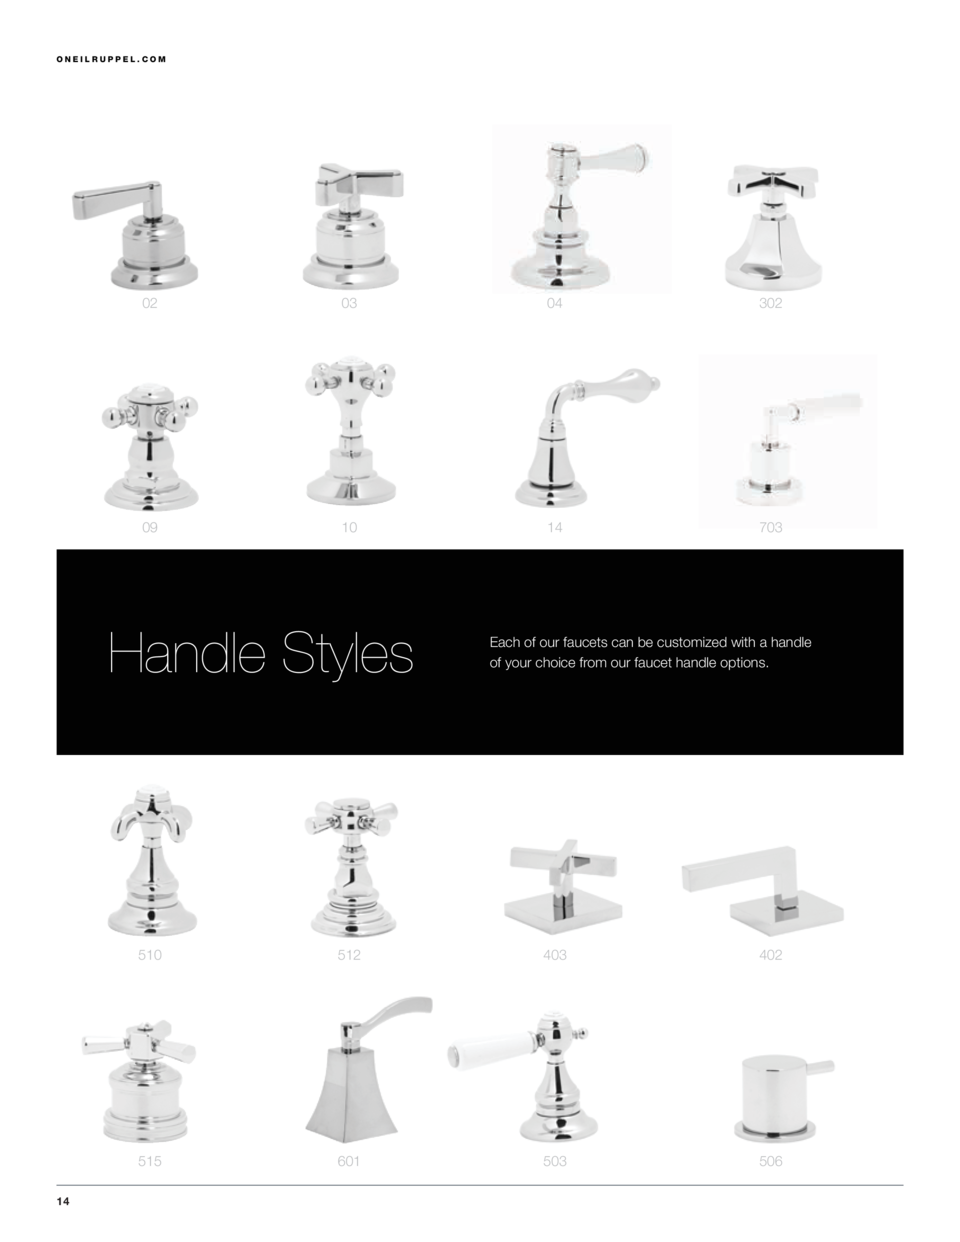 1.855.395.9677  ONEILRUPPEL.COM  02  03  04  302  09  10  14  703  Handle Styles  14  Each of our faucets can be customize...